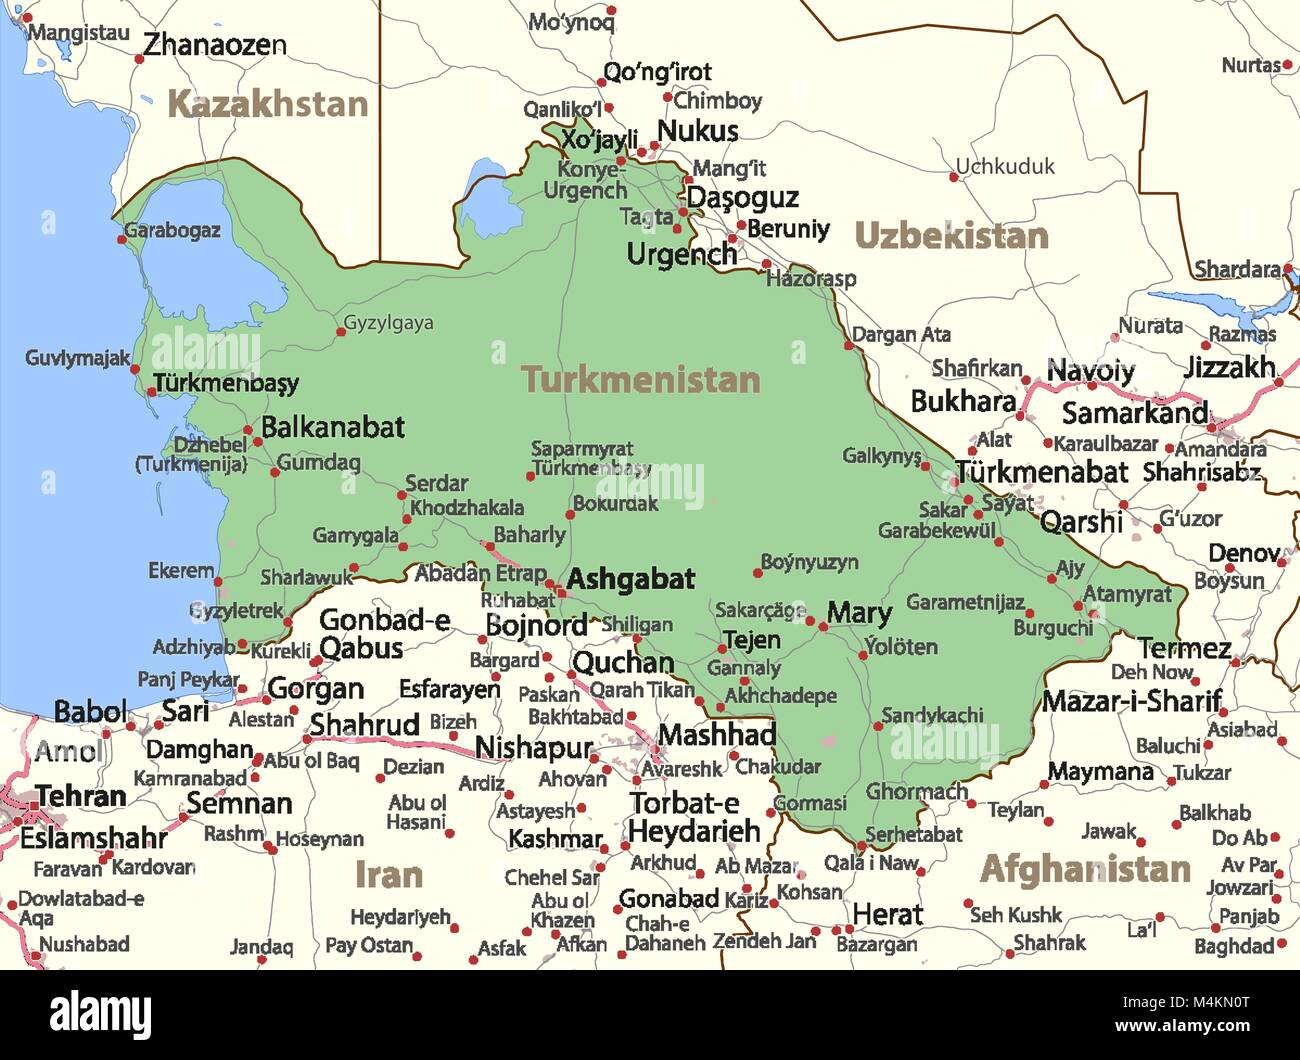 Turkmenistan stock vector images alamy map of turkmenistan shows country borders urban areas place names and roads sciox Image collections